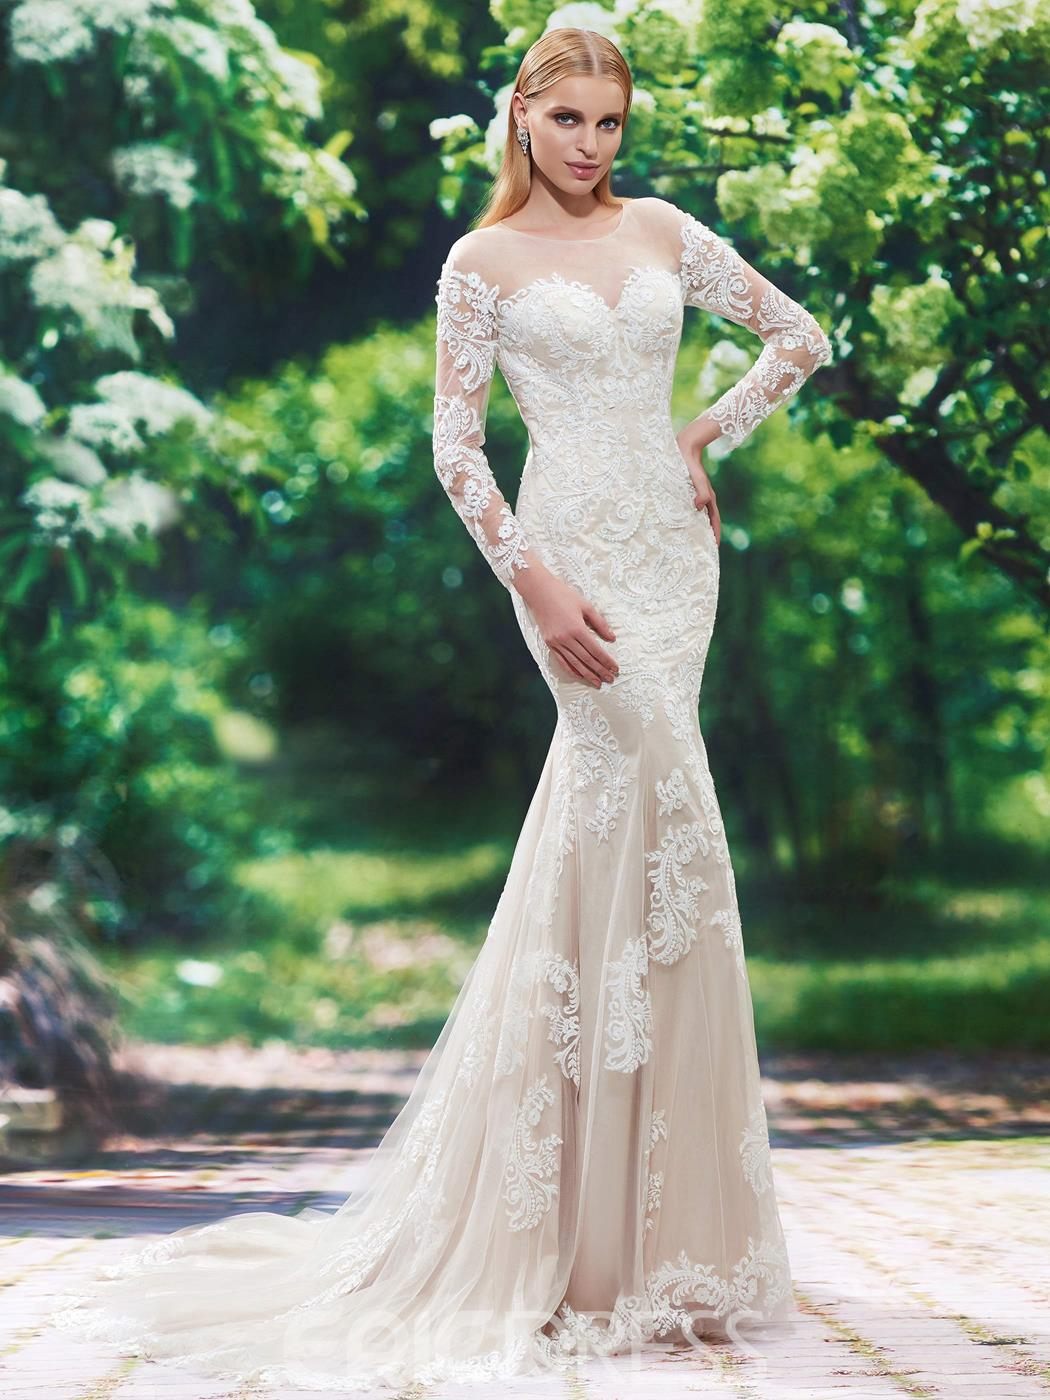 Ericdress Beautiful Illusion Neckline Long Sleeves Mermaid Wedding Dress